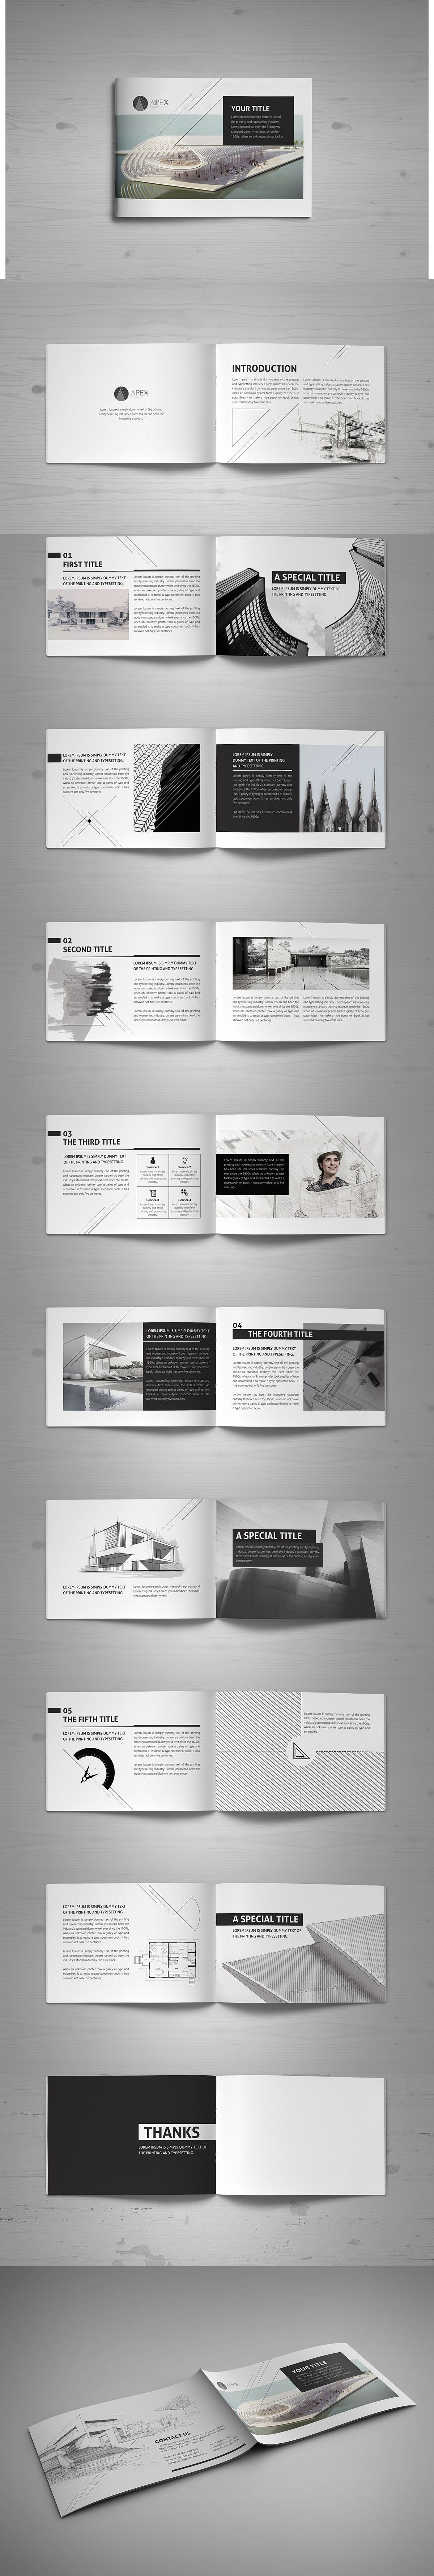 Minimal Modern Black & White Architecture Brochure Template InDesign ...